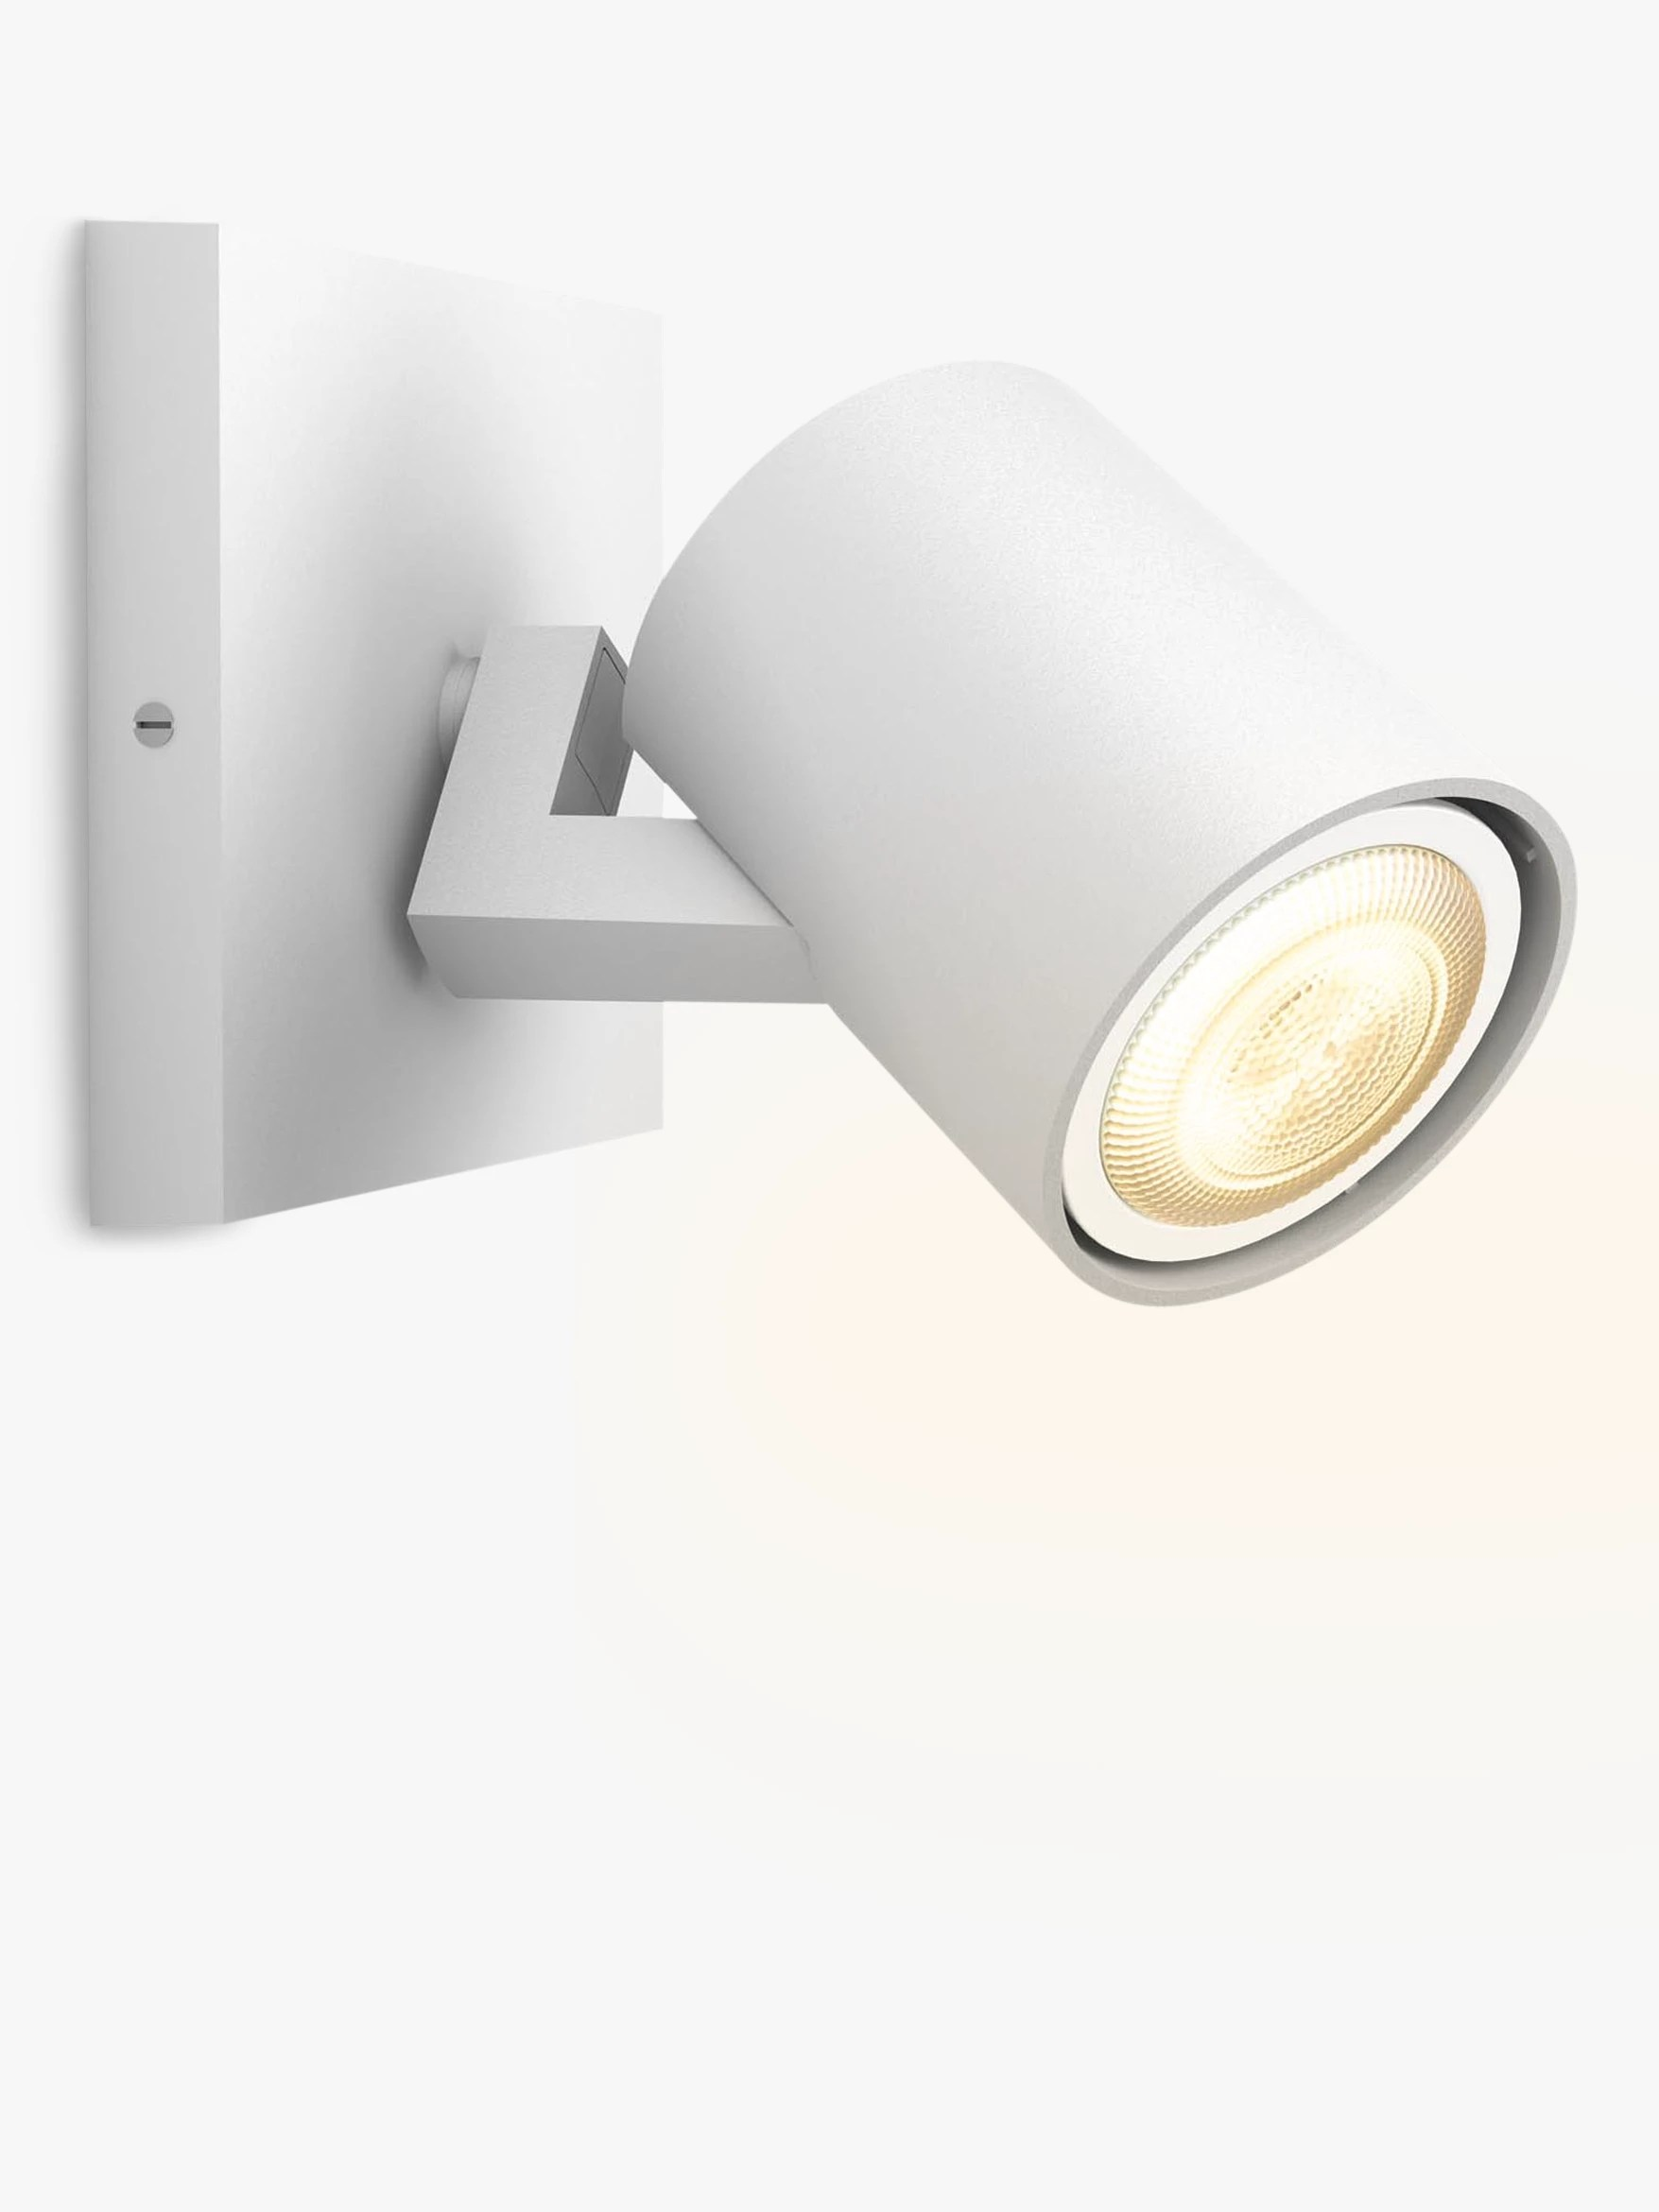 Philips Hue Included Philips Hue Runner Led Warmglow Spotlight 1 Light At John